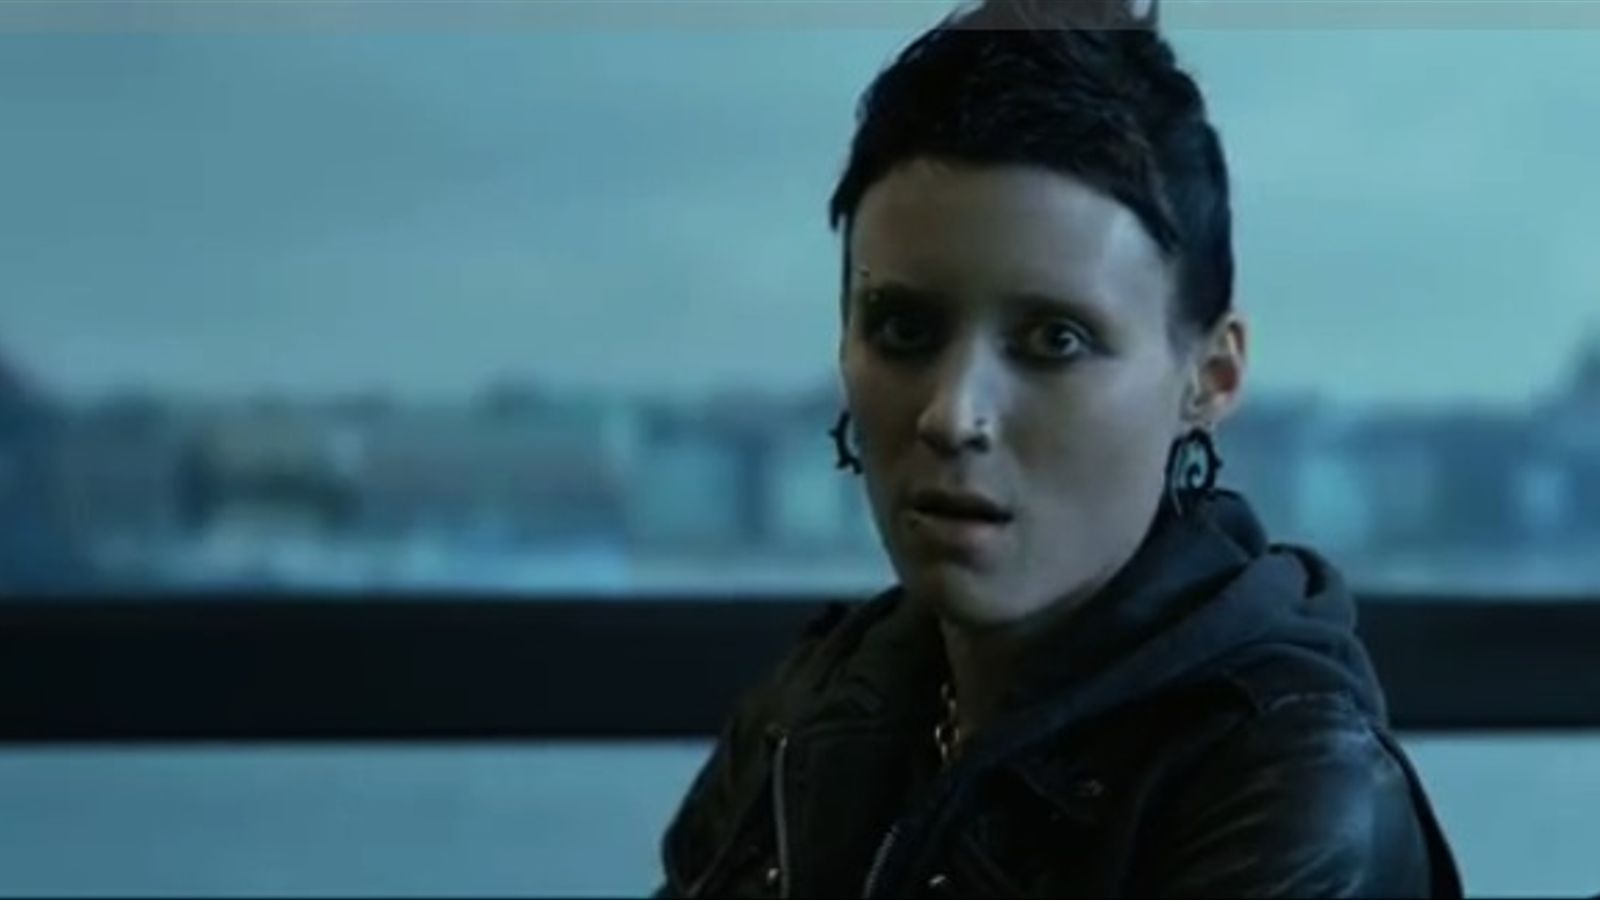 El nou tràiler de 'The girl with the dragon tattoo', l'adaptació de David Fincher de la novel·la 'Els homes que no estimaven les dones'